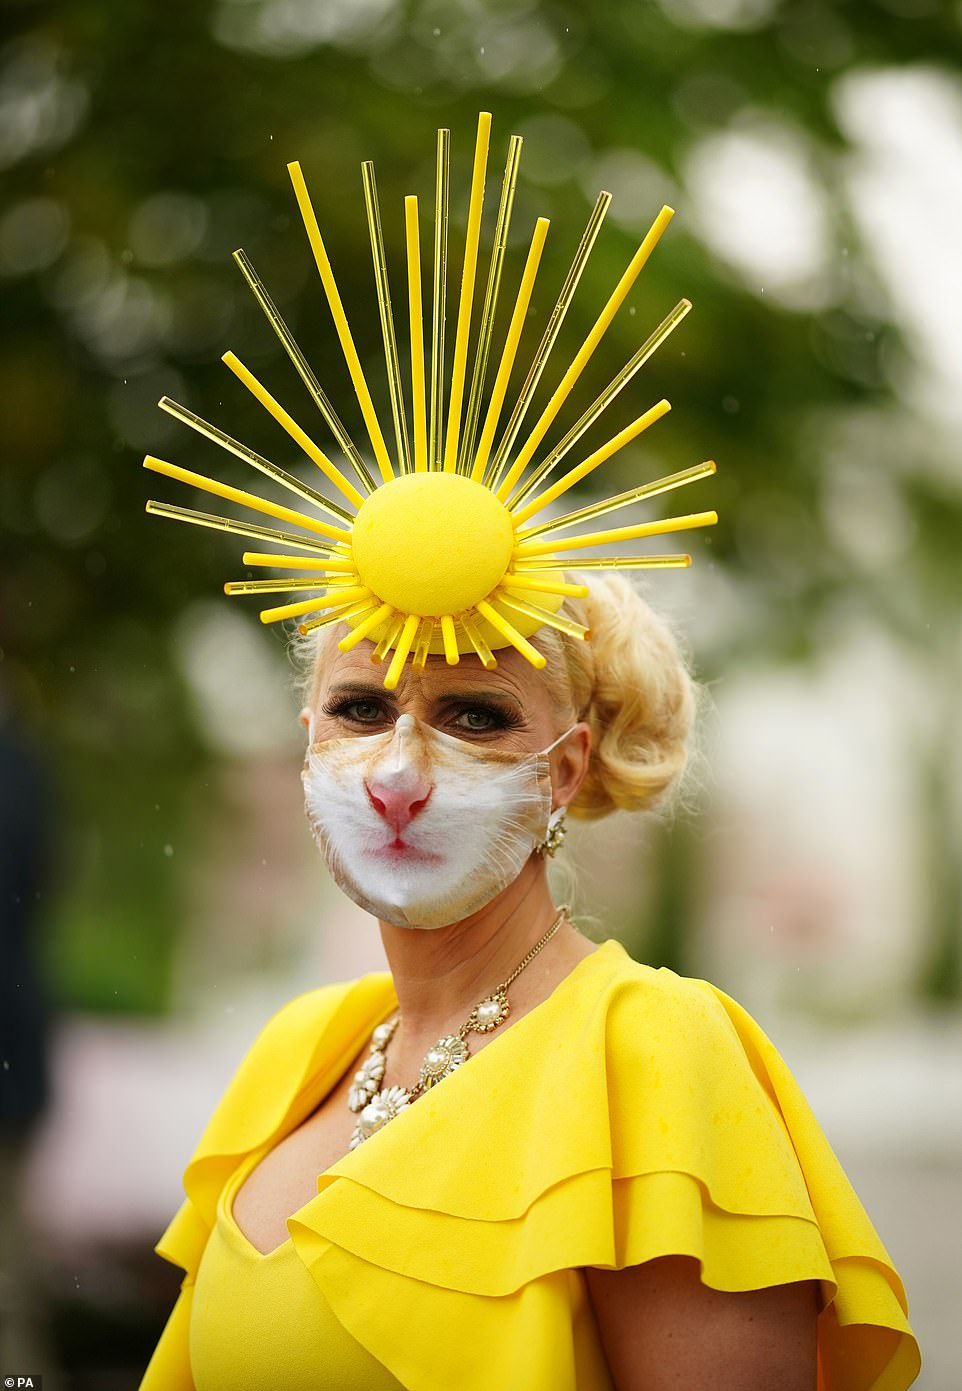 Now that's accessorising! One woman matched her impressive lion mane-like fascinator with her protective face mask